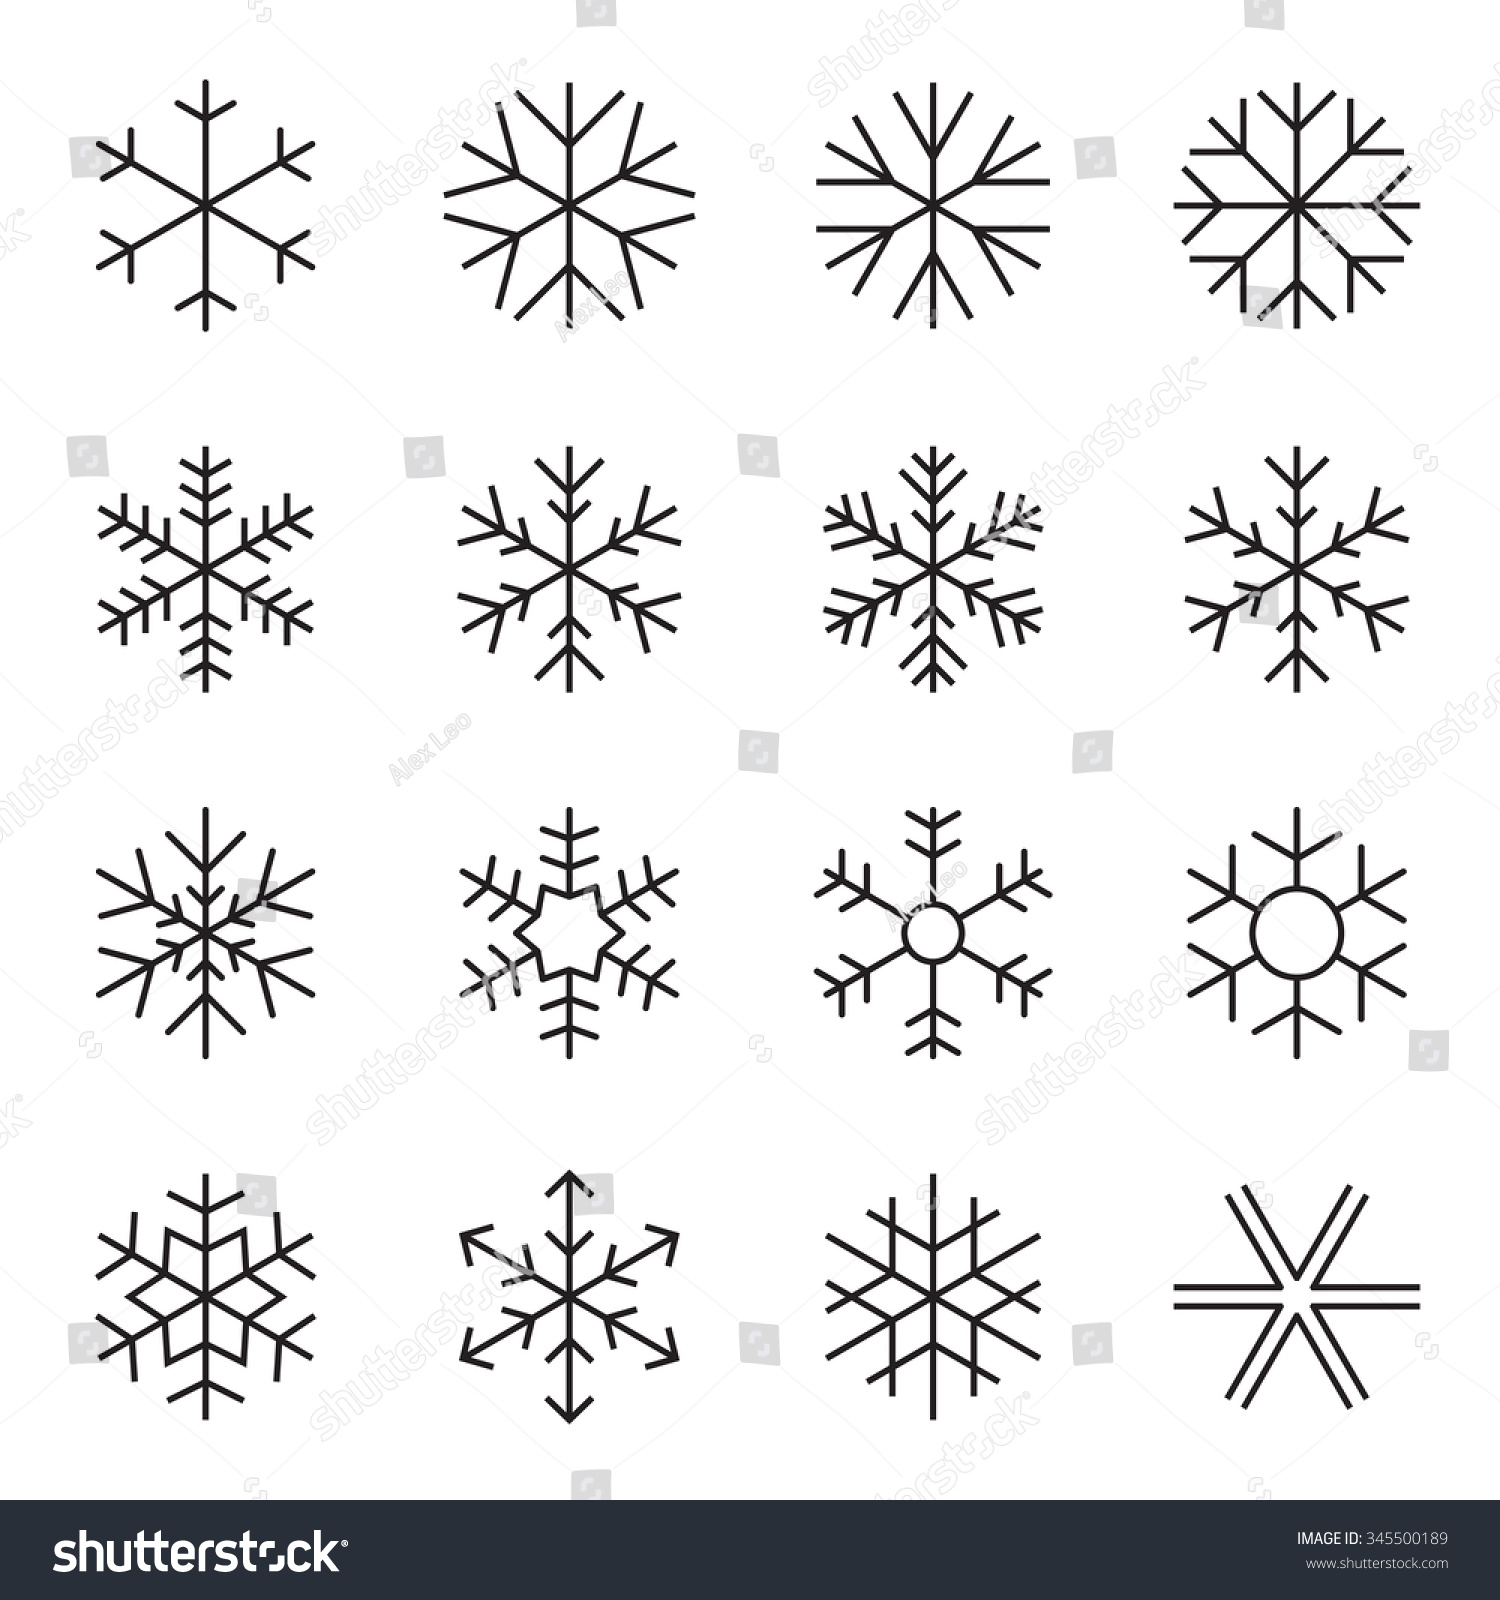 Simple Snowflake Line Art : Thin line simple snowflake icons symbols of winter frost